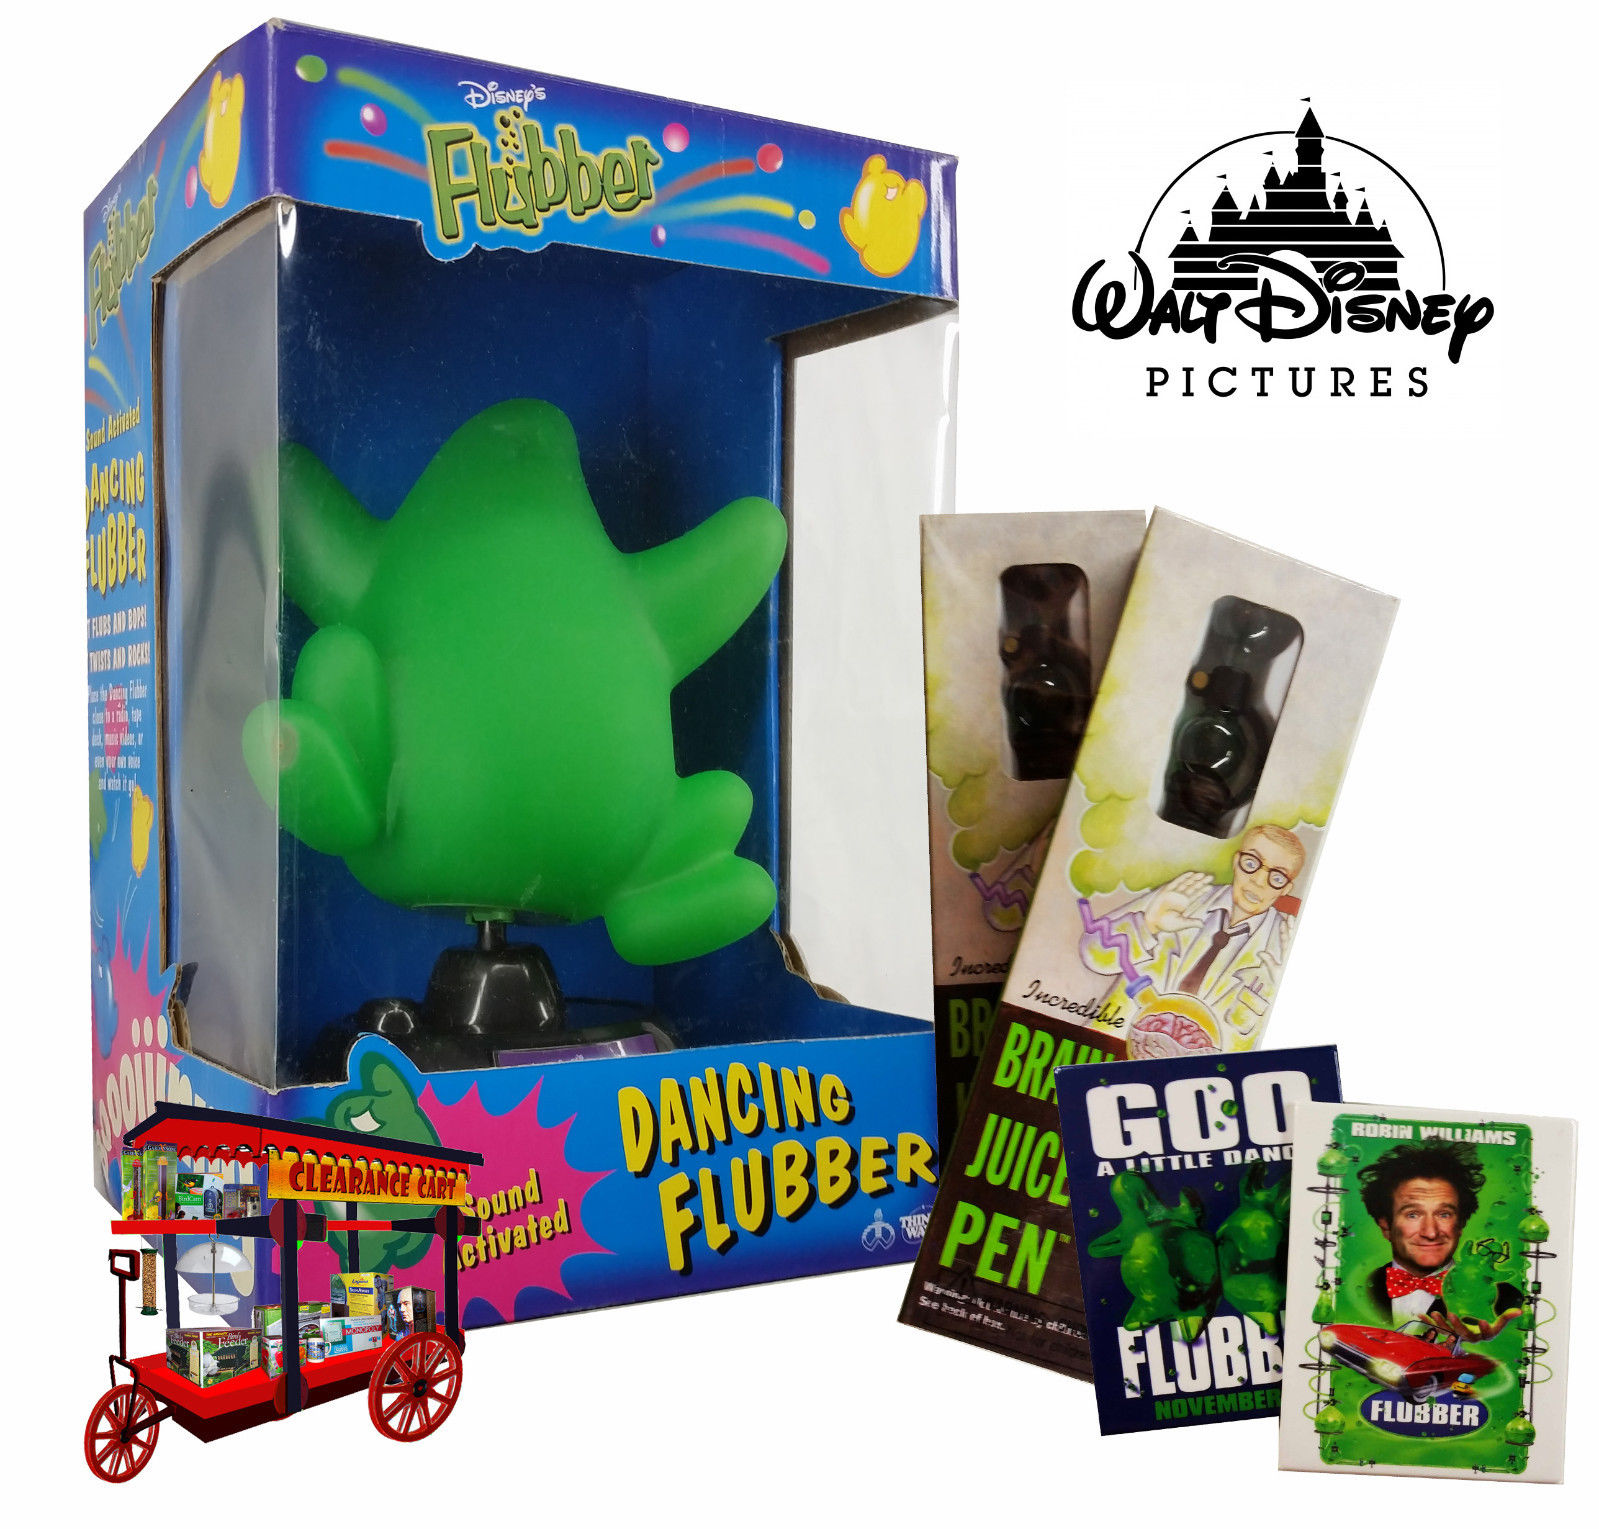 DISNEY'S FLUBBER 'DANCING FLUBBER' COLLECTION